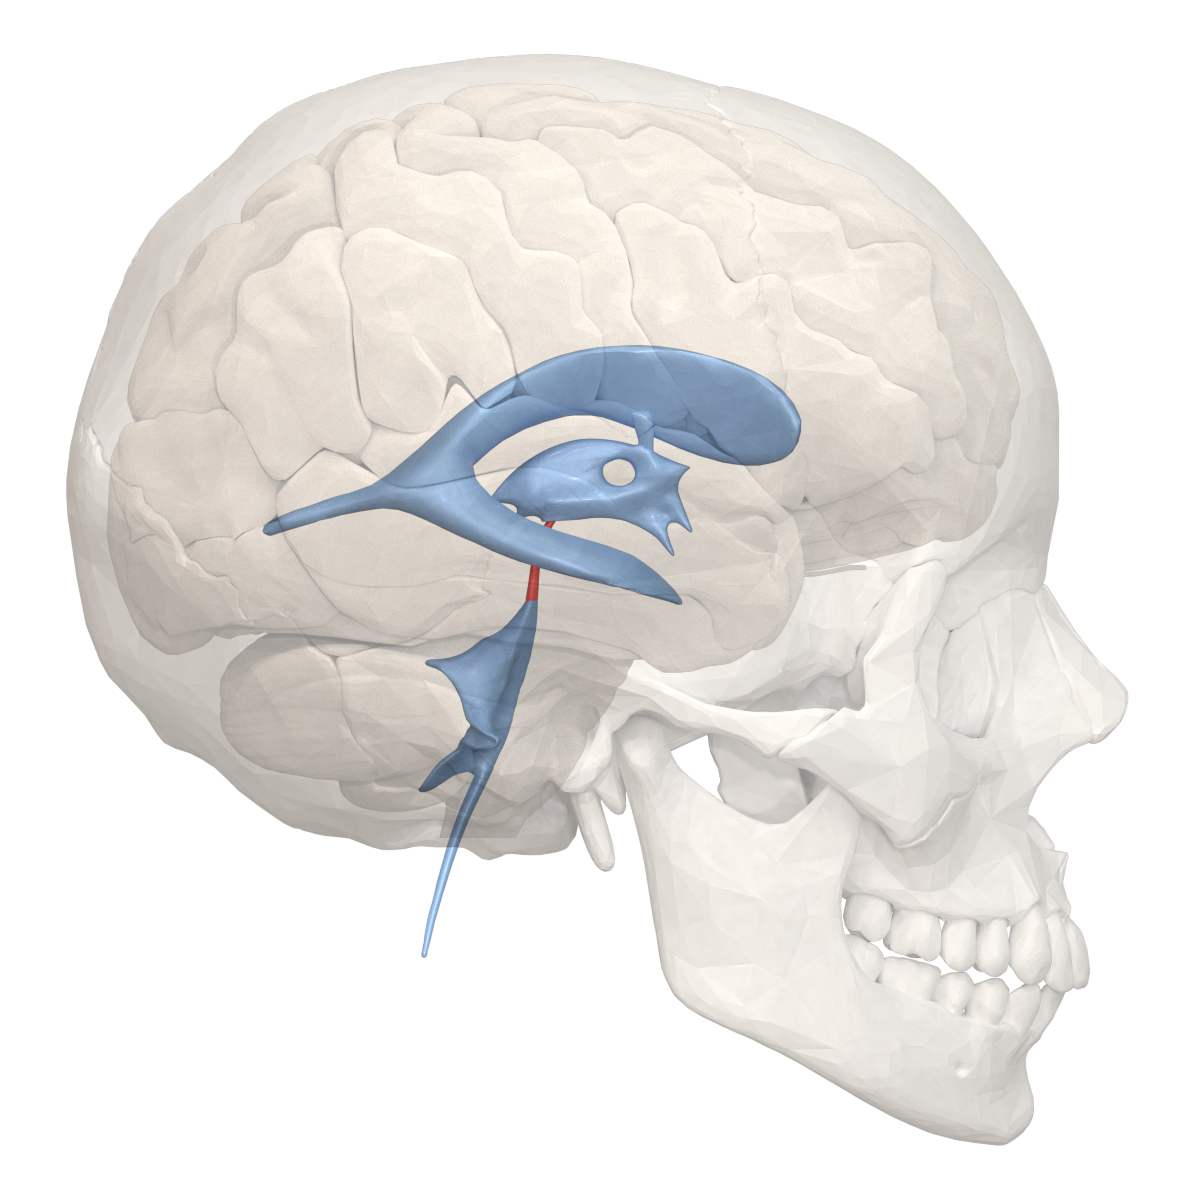 File Cerebral Aqueduct 02 Png Wikimedia Commons Above is part of a list of various areas and anatomical names of the human brain. https commons wikimedia org wiki file cerebral aqueduct 02 png